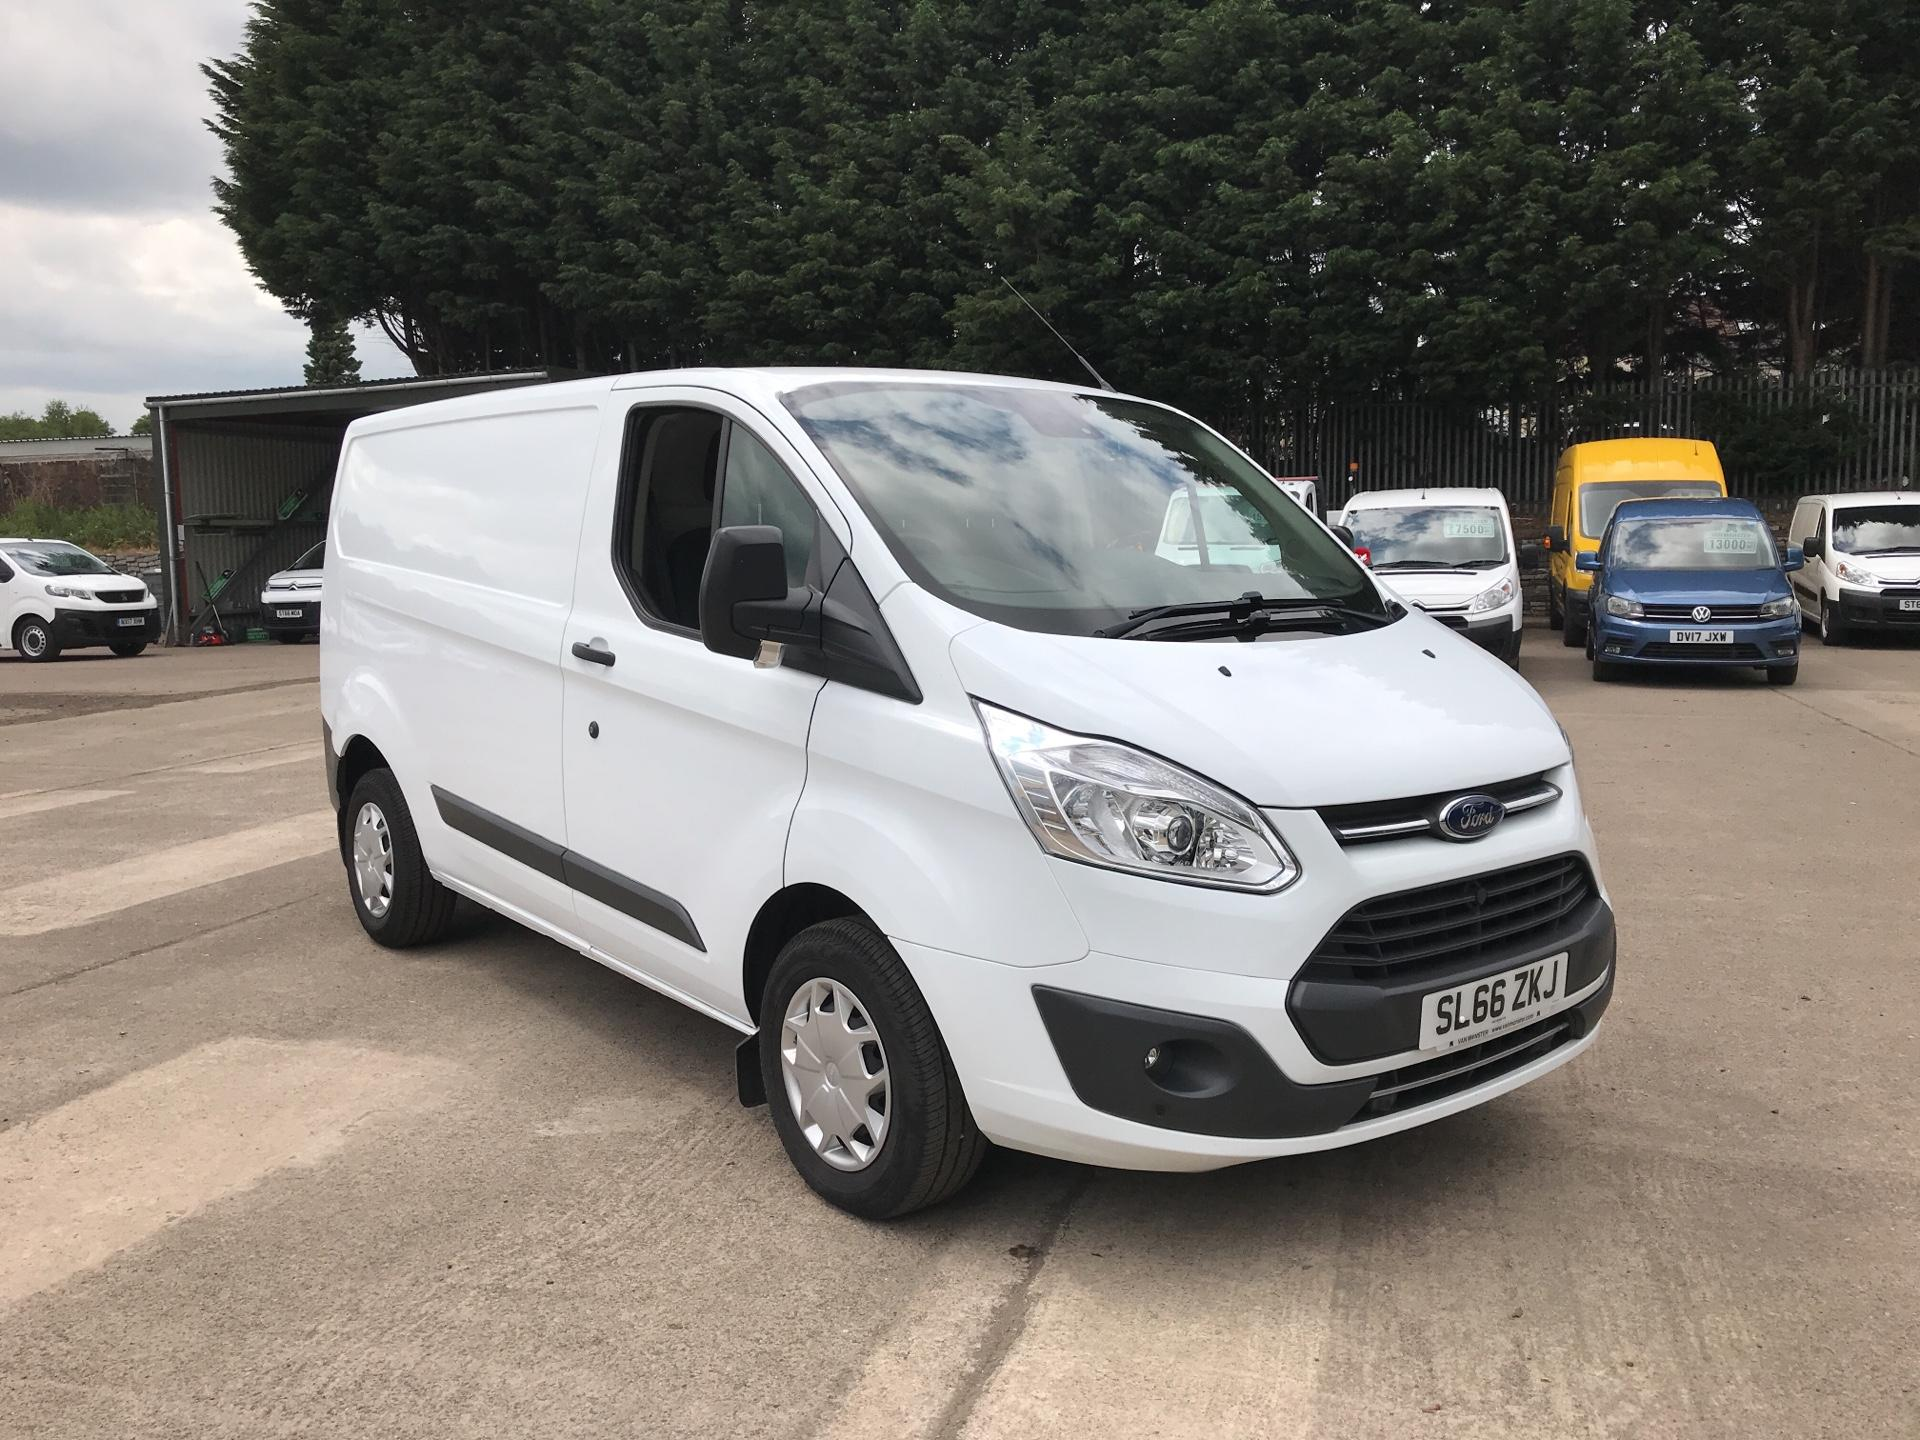 2016 Ford Transit Custom 270 L1 DIESEL FWD 2.0 TDCI 130PS LOW ROOF TREND EURO 6 (SL66ZKJ)